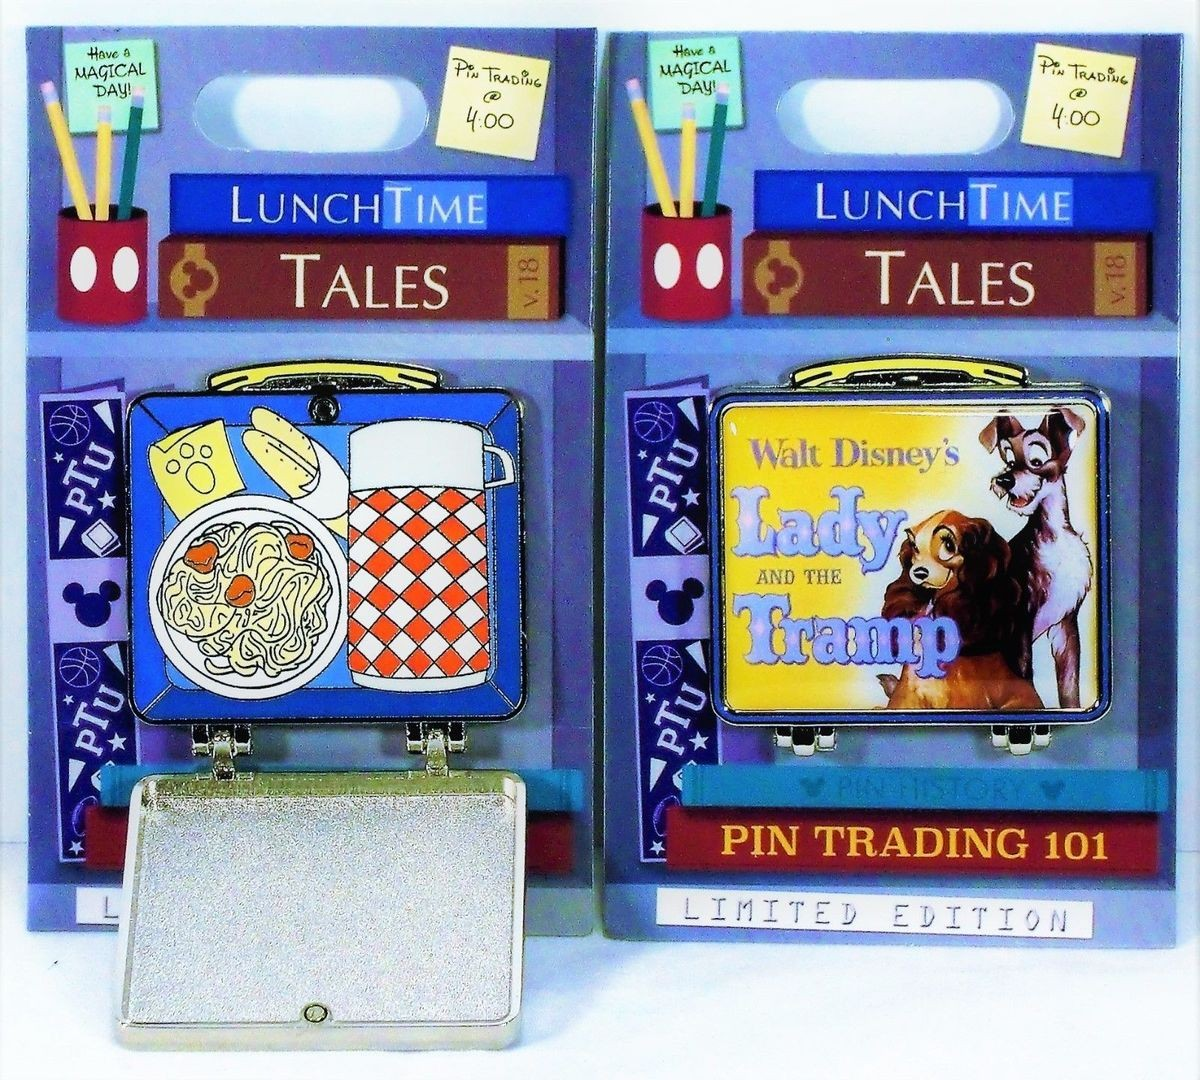 Lunch Time Tales Lady and the Tramp Lunch Box Disney Pin